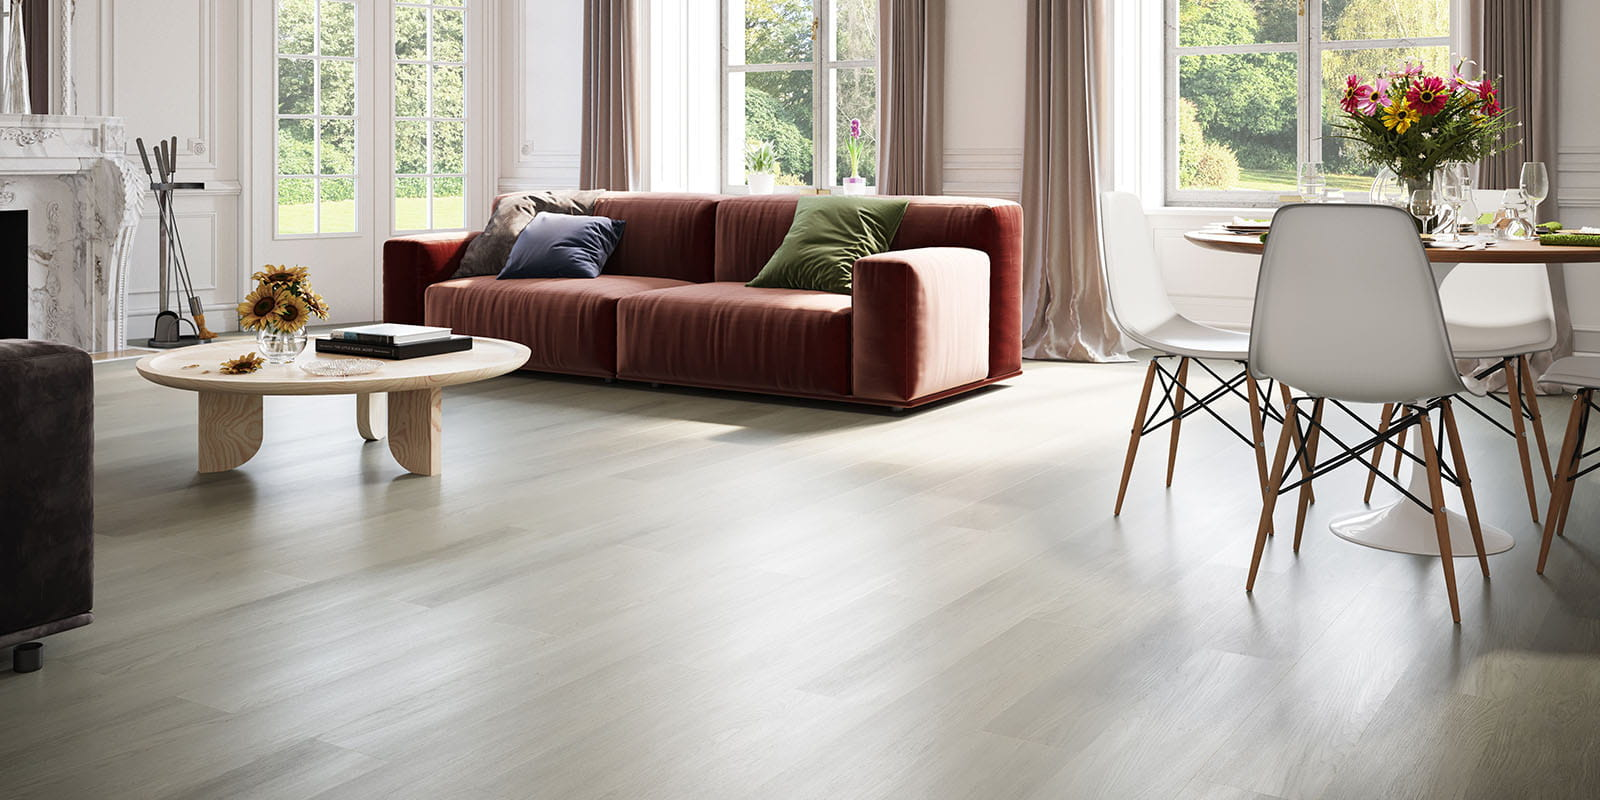 Invictus® Luxury Vinyl Flooring - New England Oak - Misty - Living